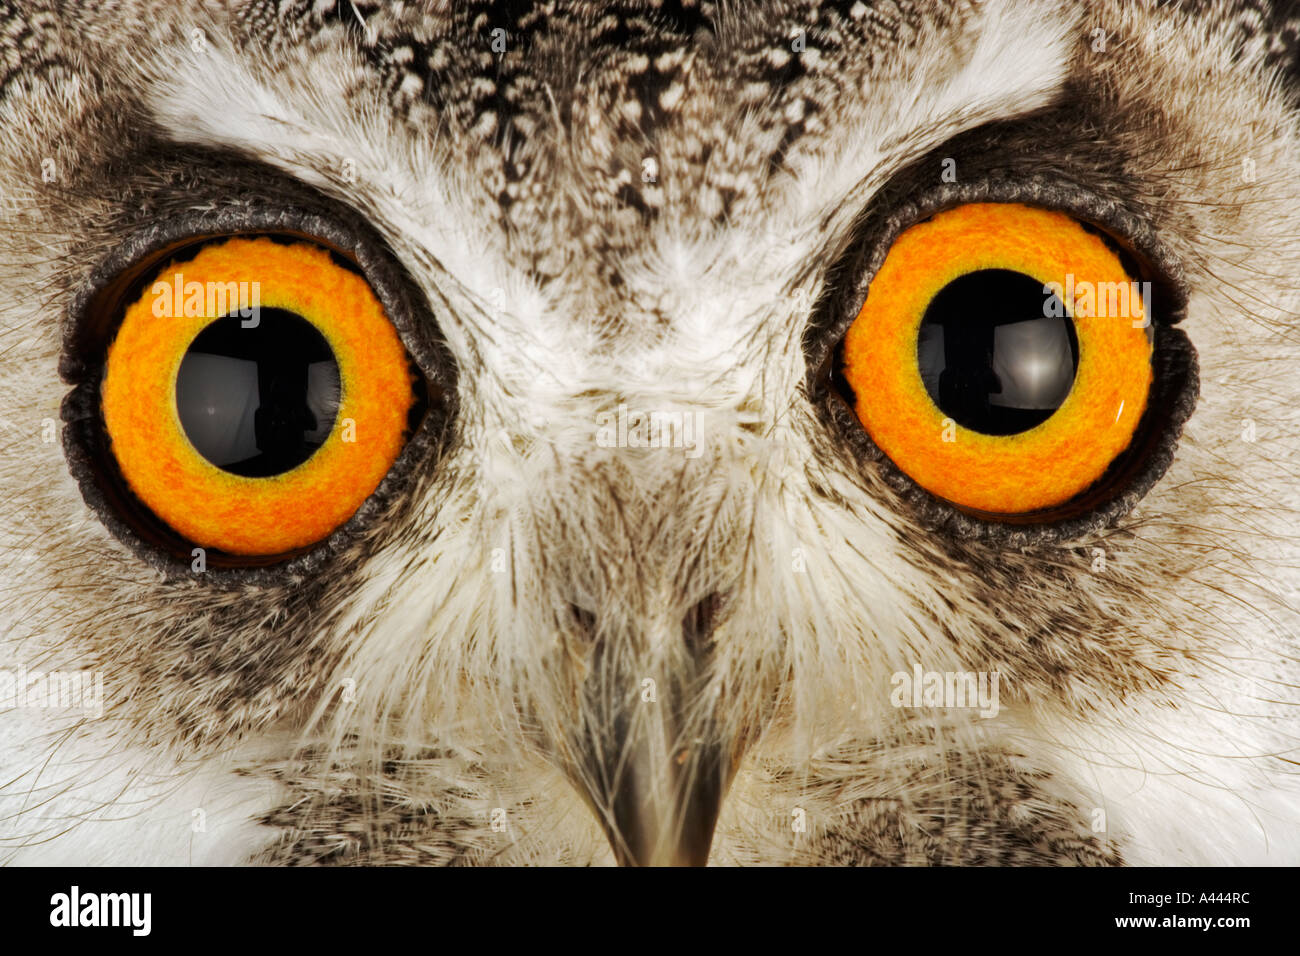 Southern White faced Owl Ptilopsis granti Medium sized nocturnal bird with prominent ear tufts. Found in Southern Africa - Stock Image